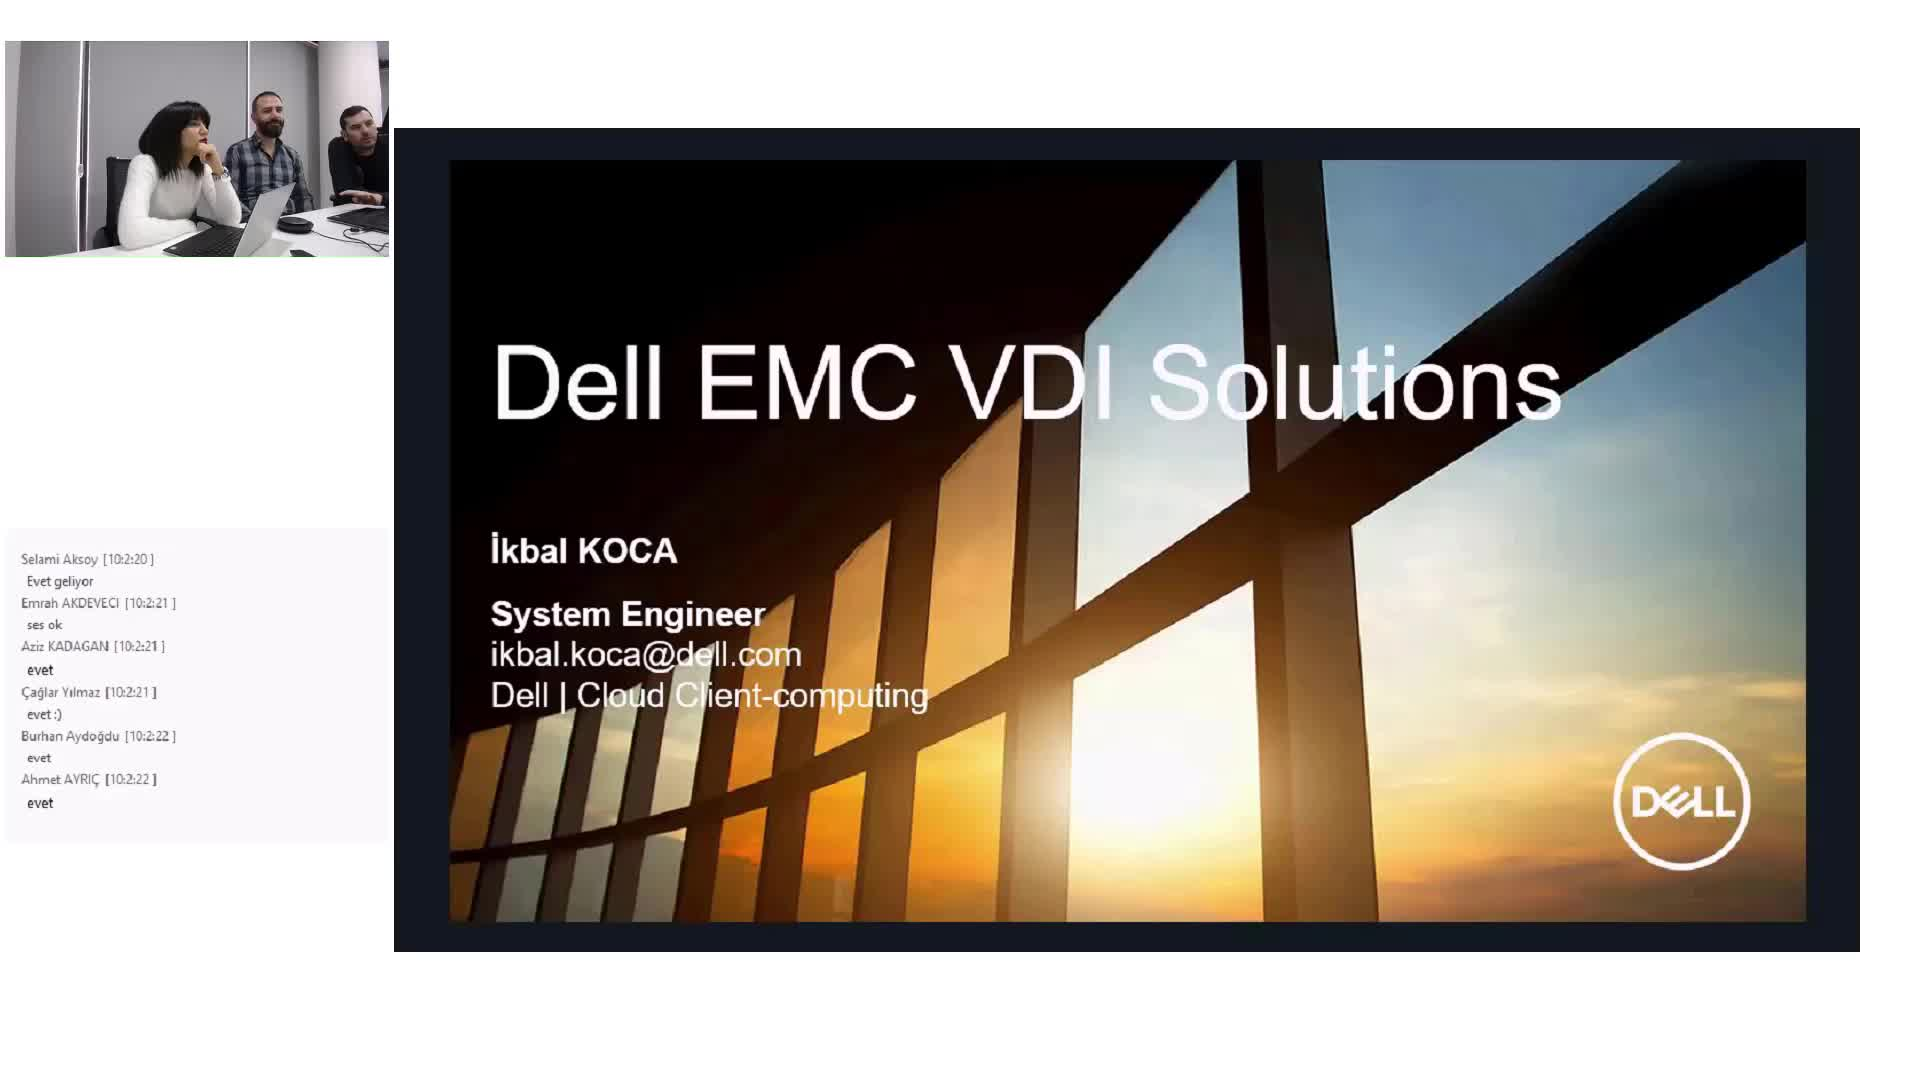 Dell EMC ile Thinclient ve Desktop Virtulization Çözümleri